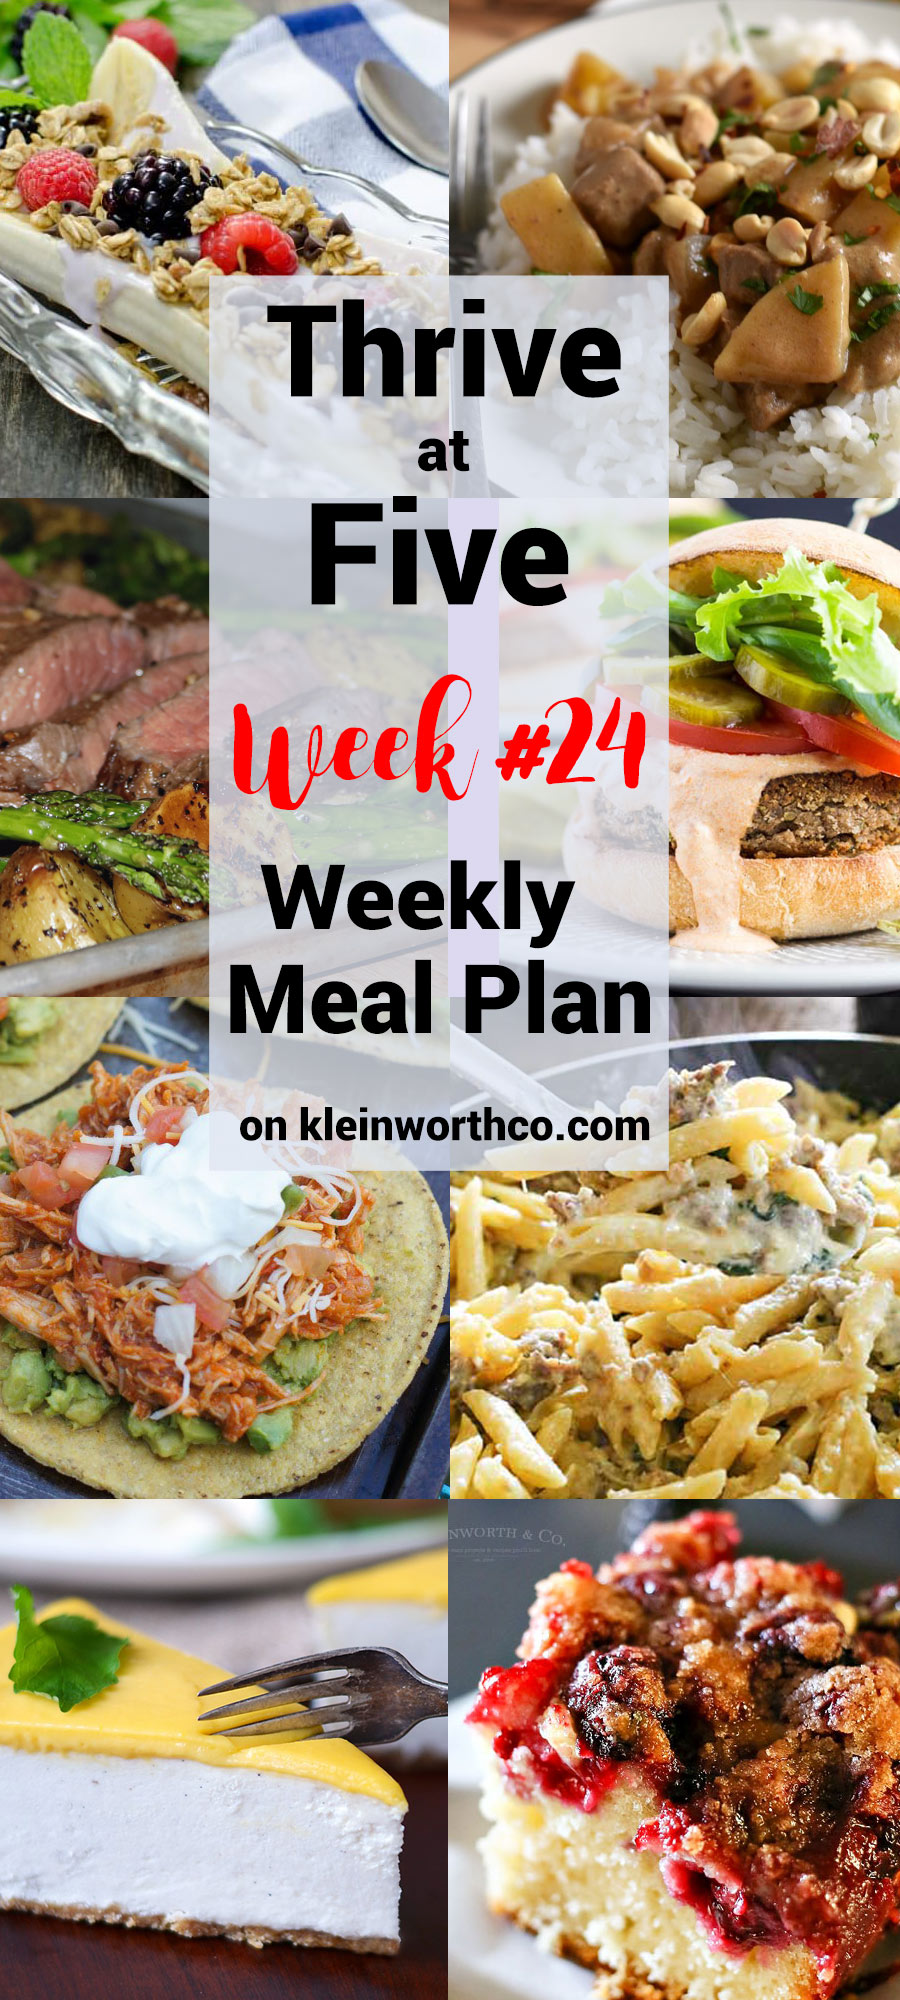 Thrive at Five Meal Plan Week 24